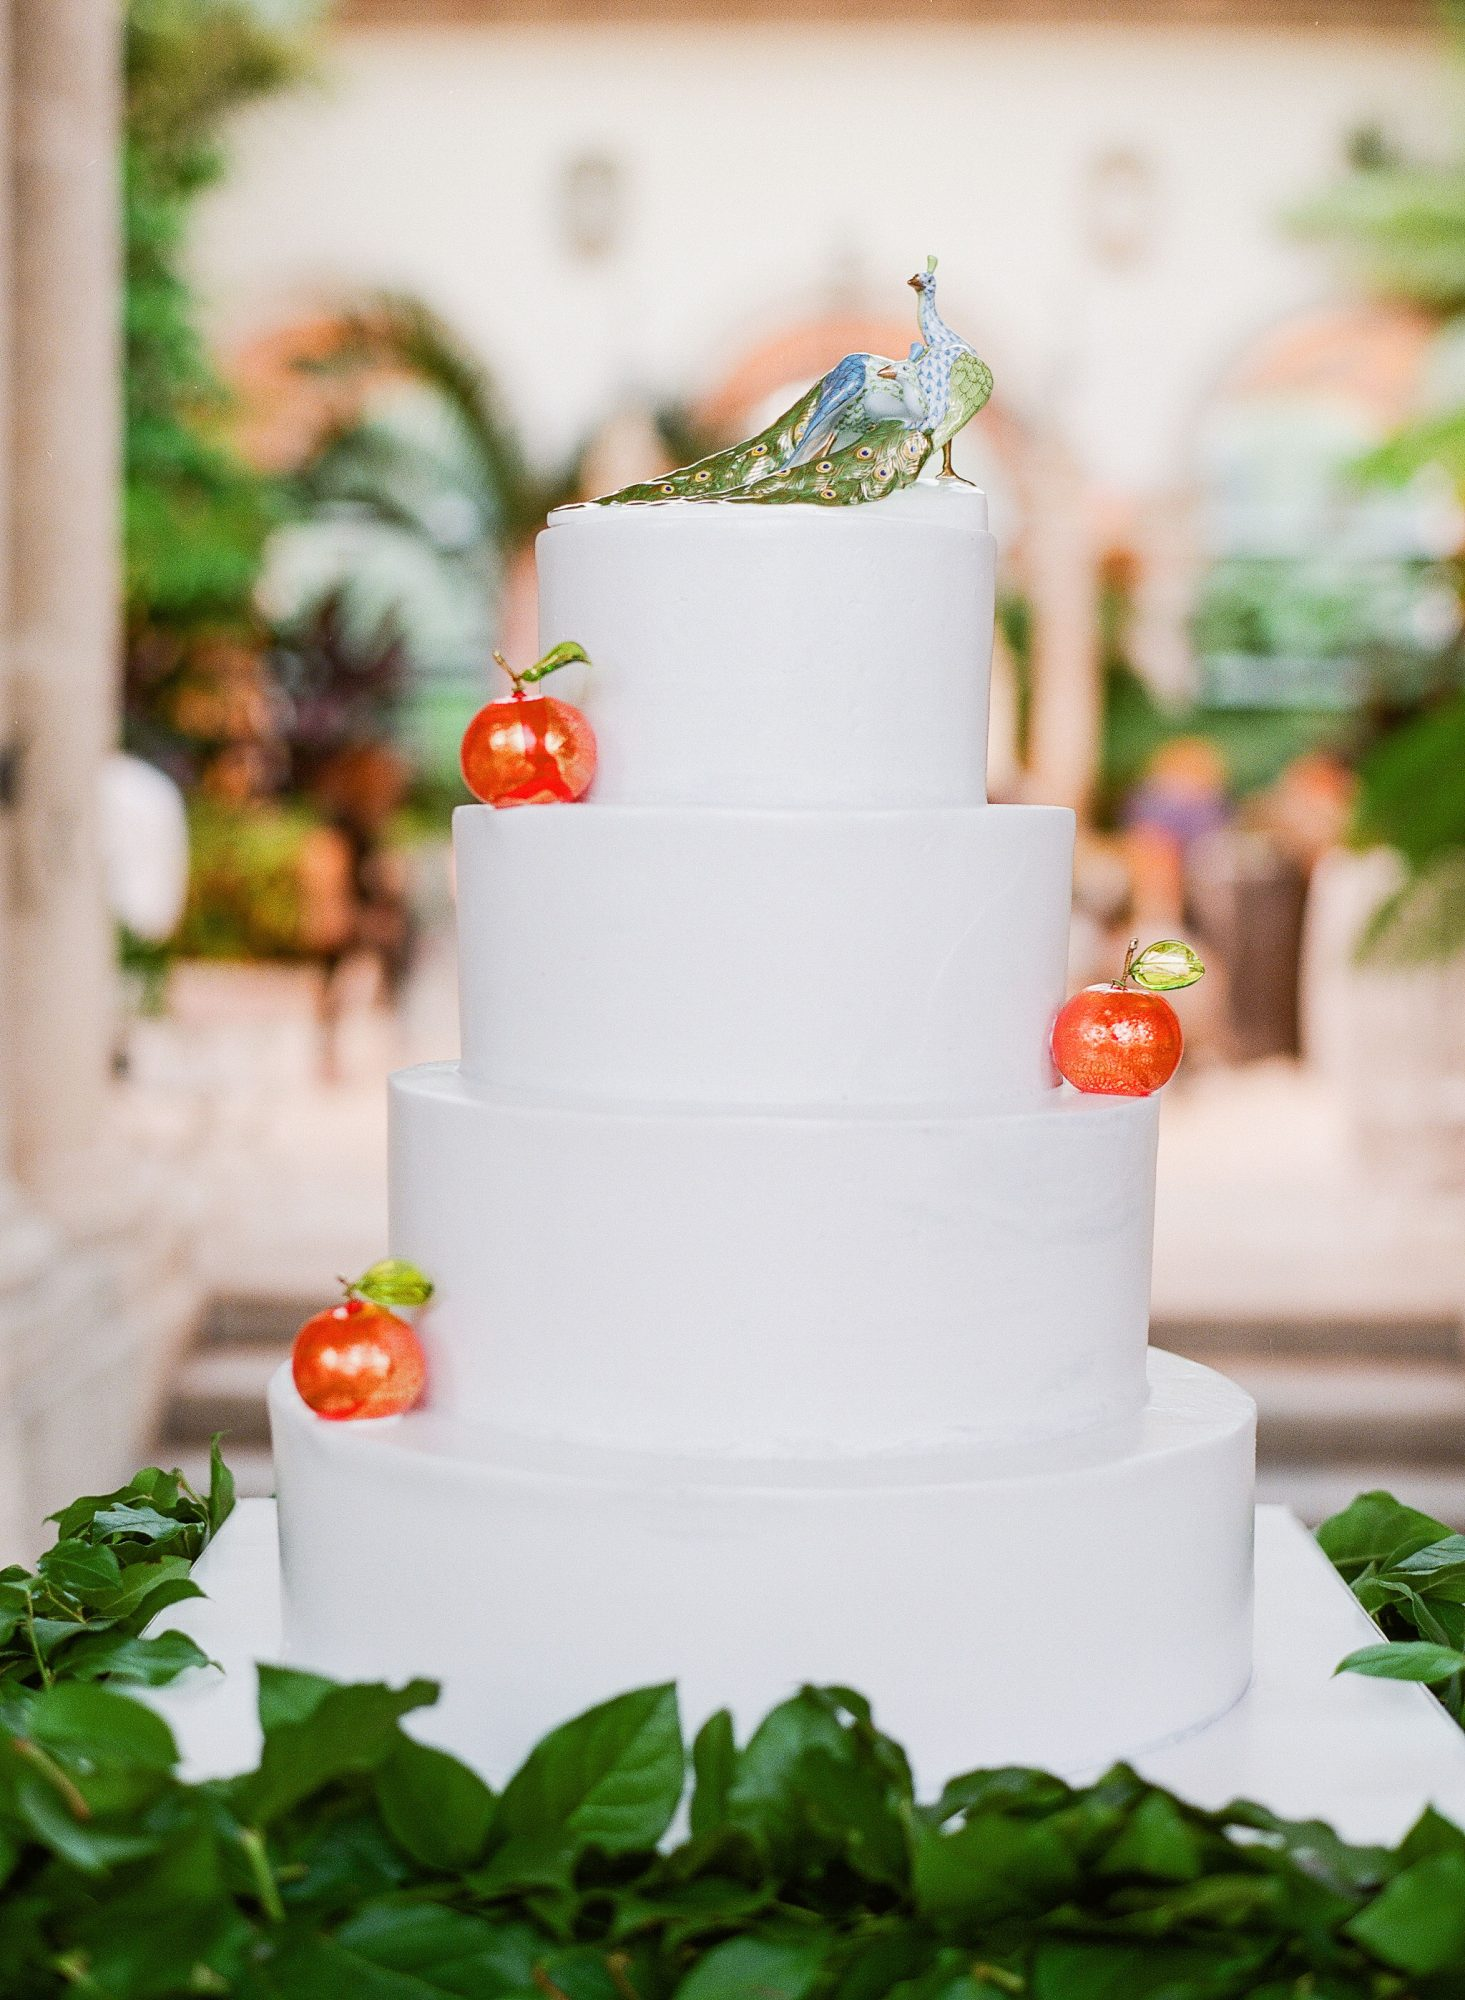 natalie jamey wedding cake